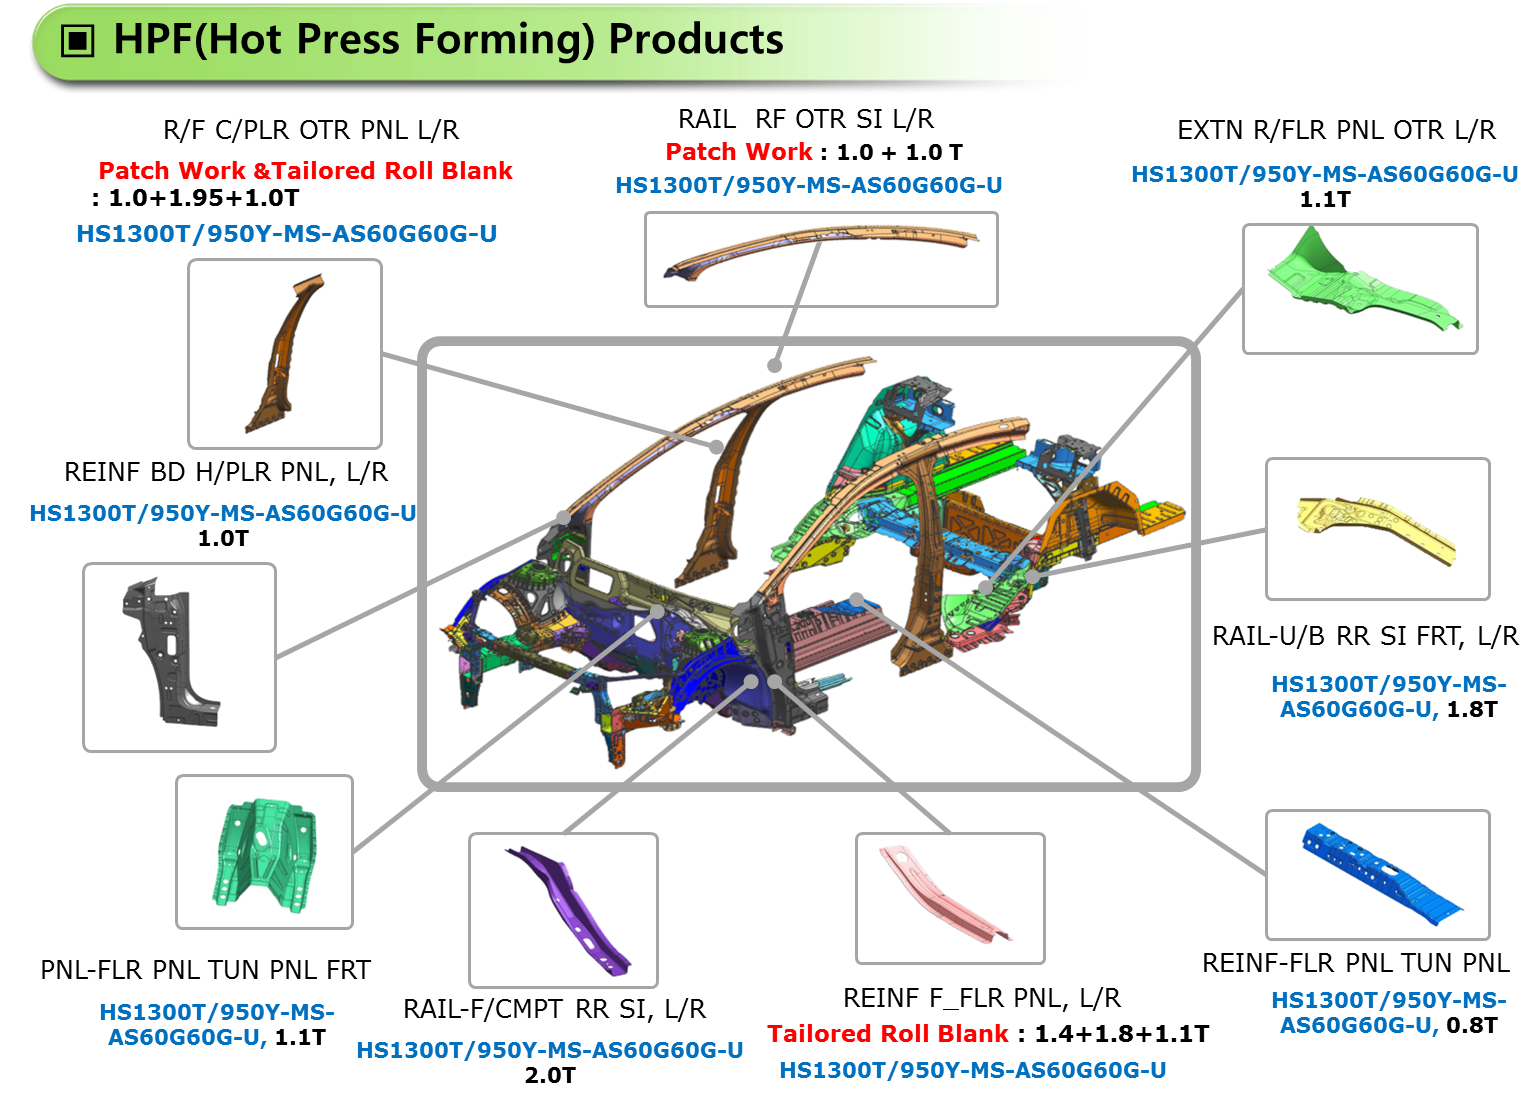 Hot Press Forming Product for Automobile & Passenger